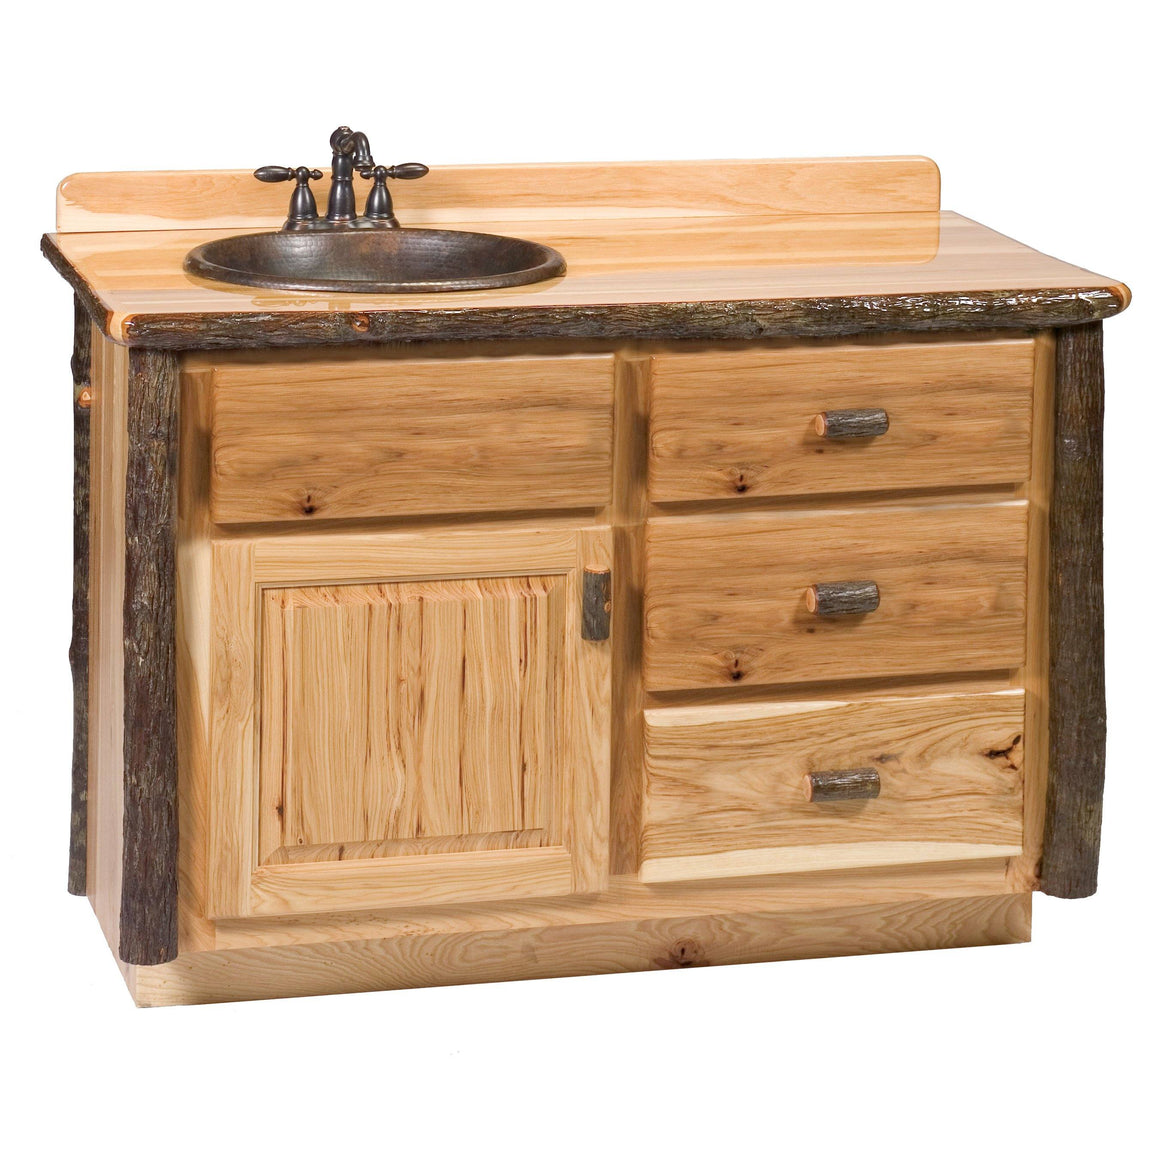 Hickory Log Vanity - 36, 42, 48 Inch without Top - Sink Left-Rustic Deco Incorporated